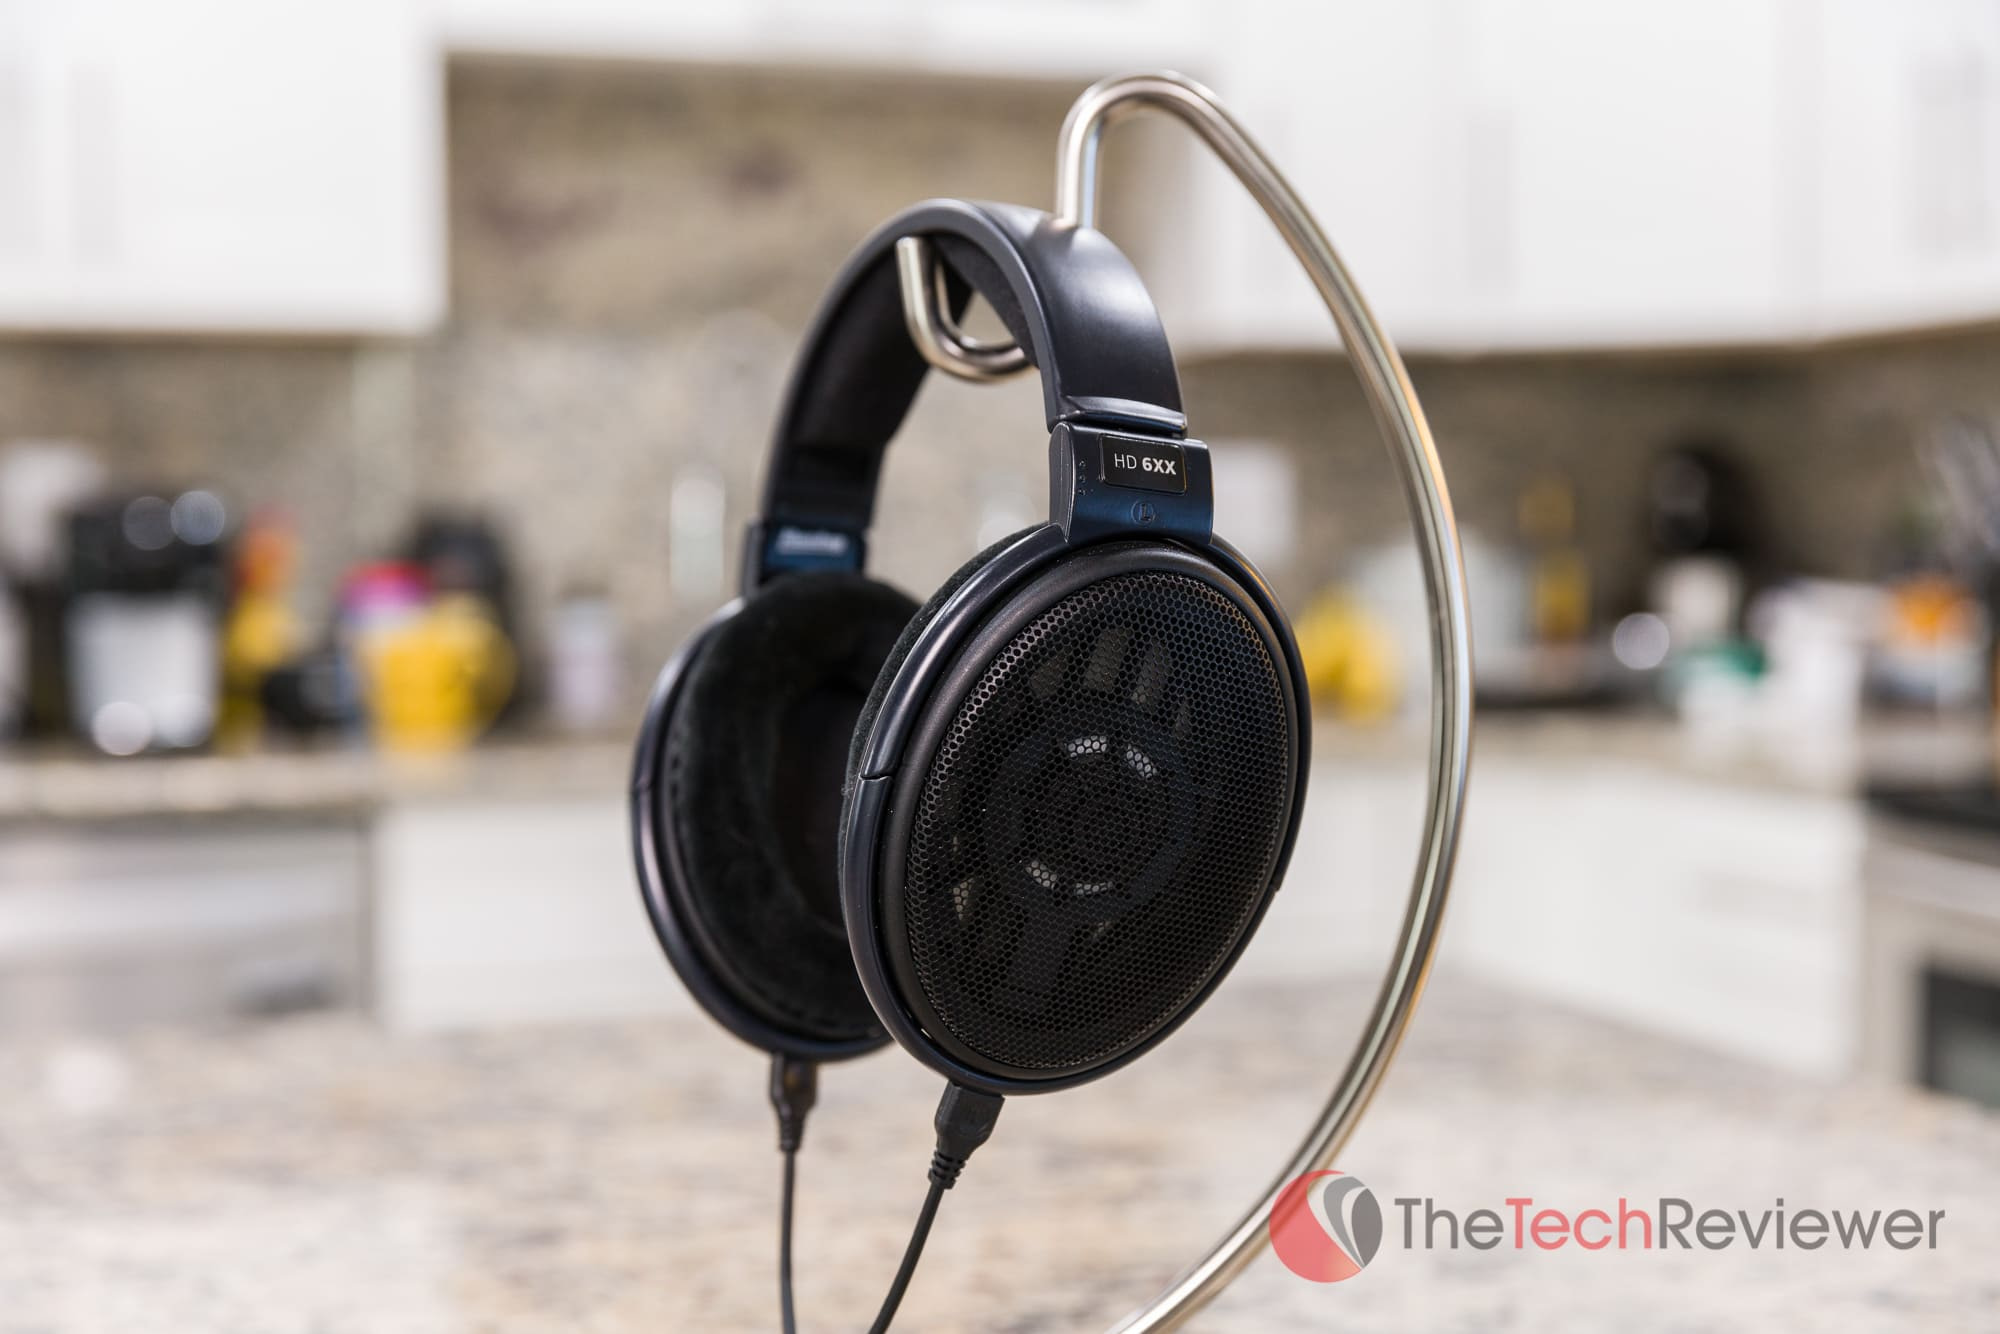 hd 6xx reviews